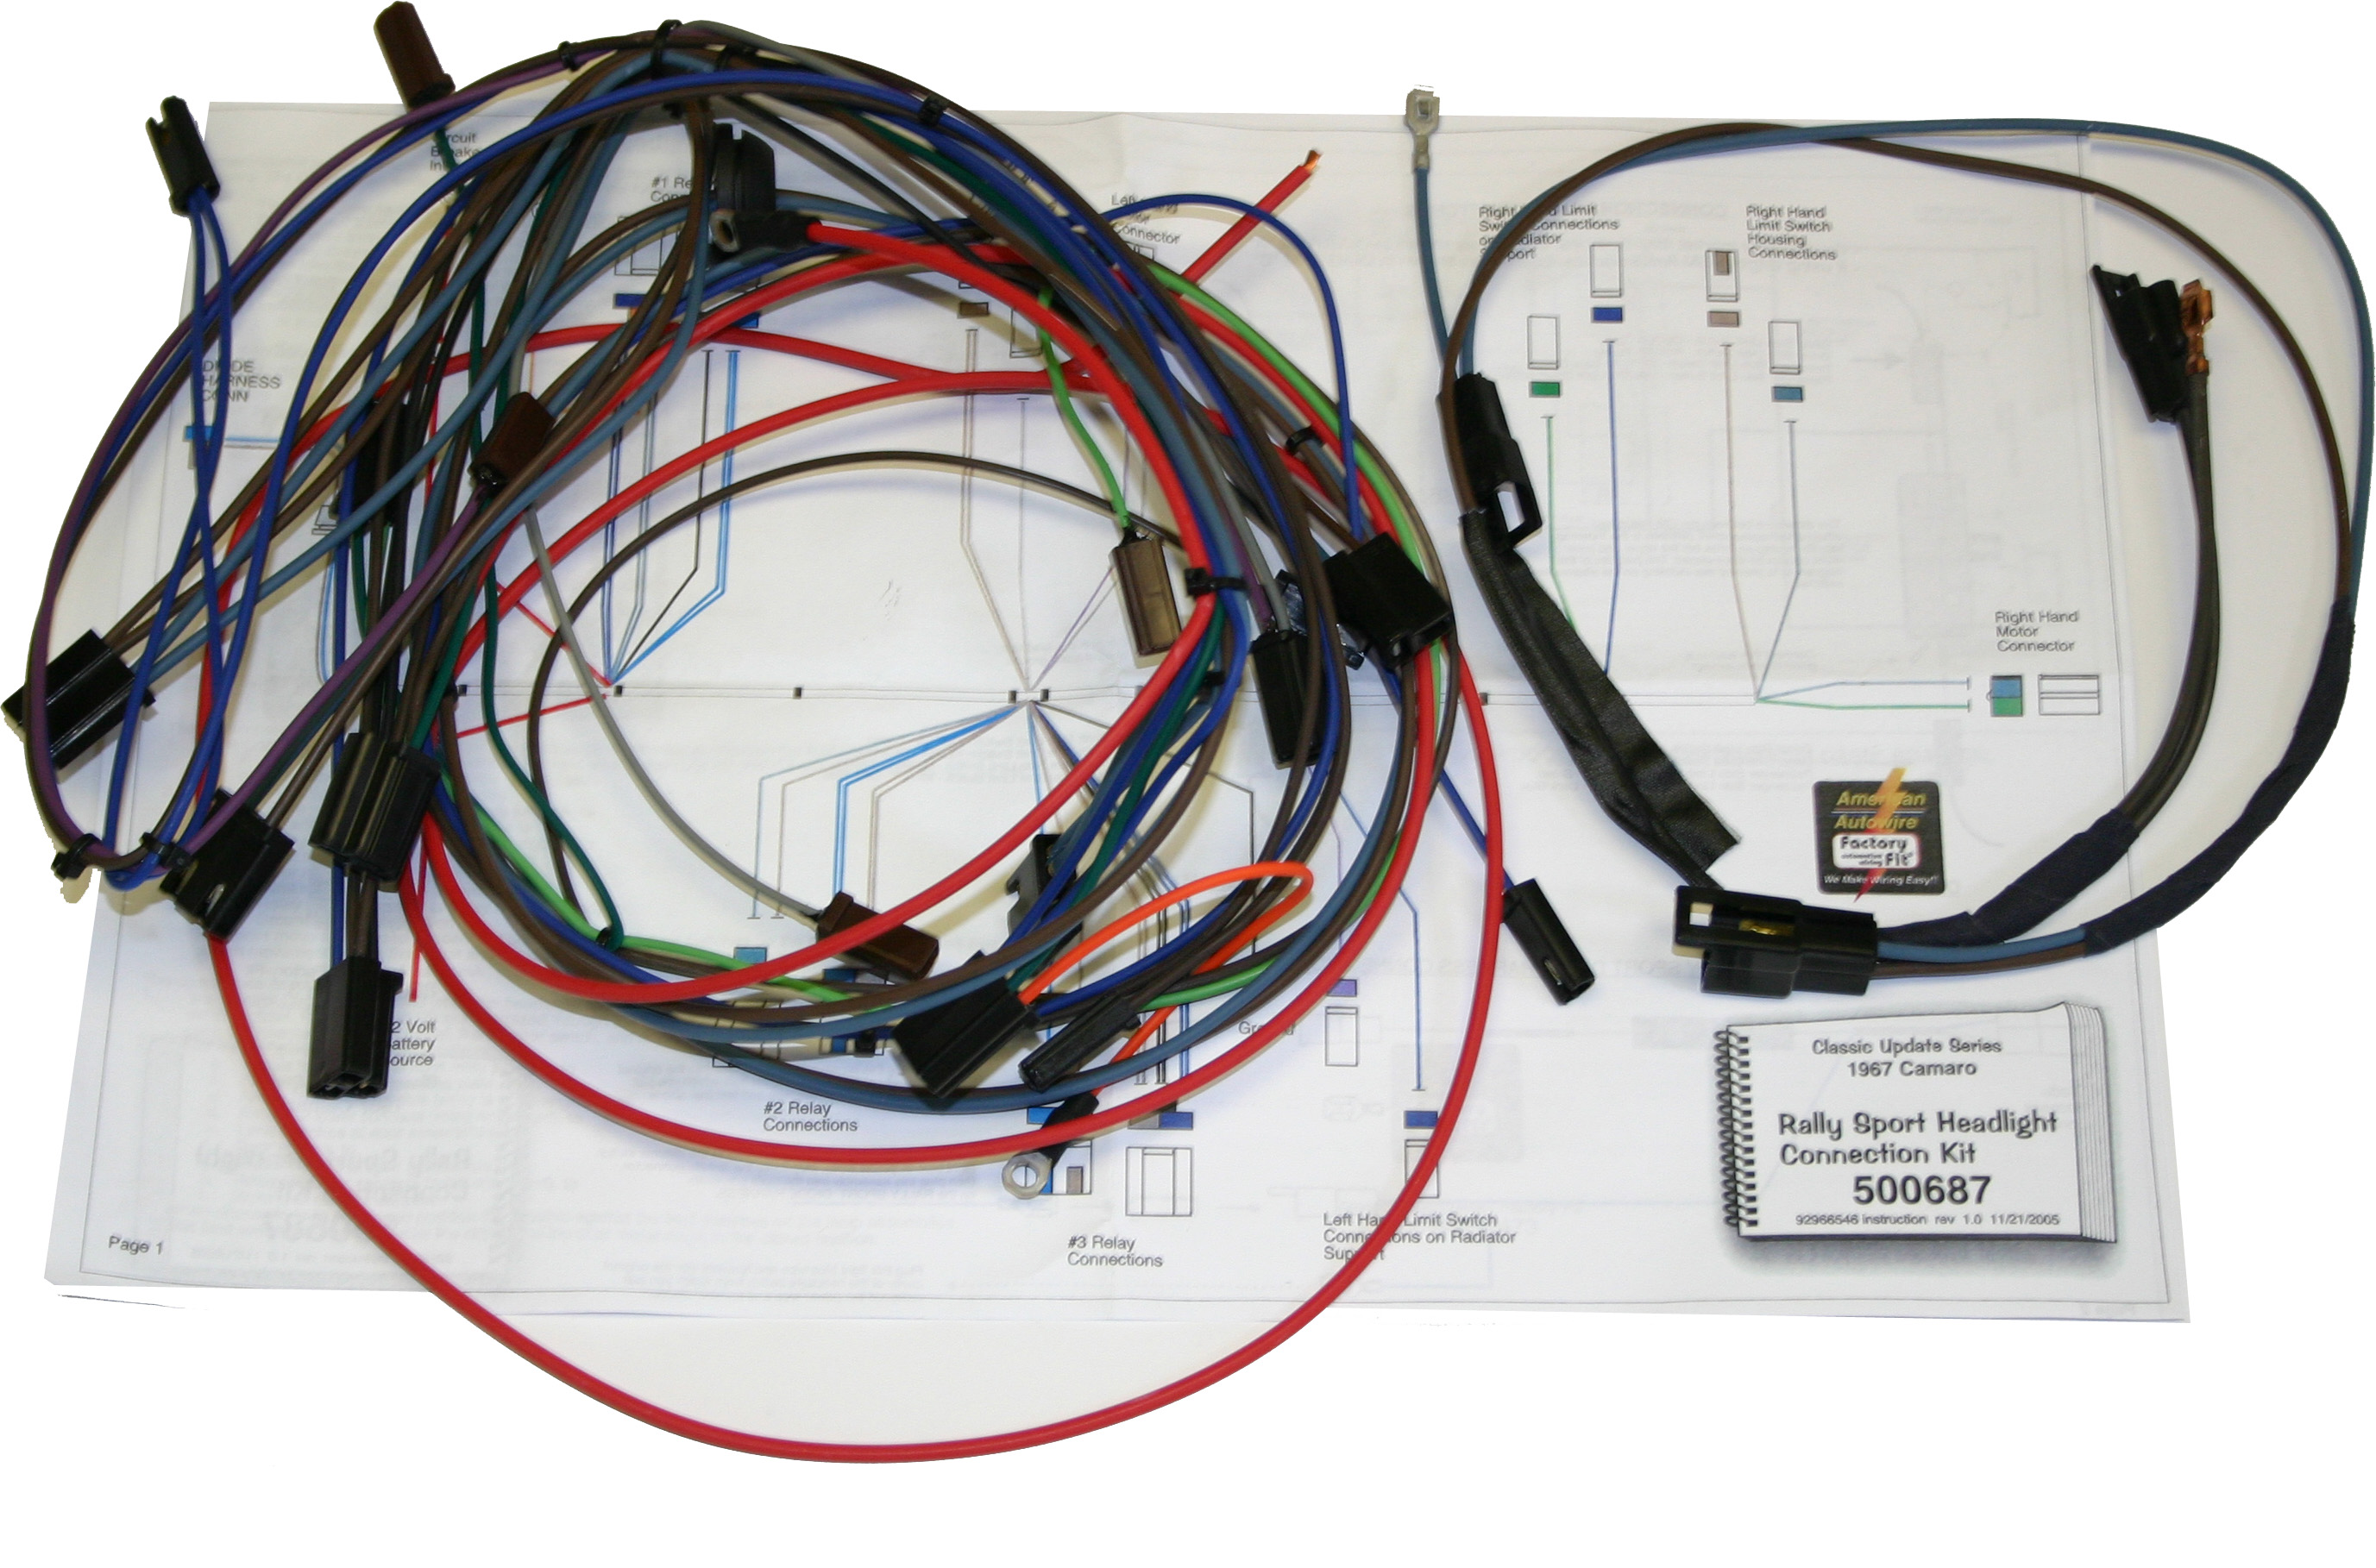 67 68 Camaro Classic Update Wiring Harness 500661 Cable As Well Phone Jack Diagram